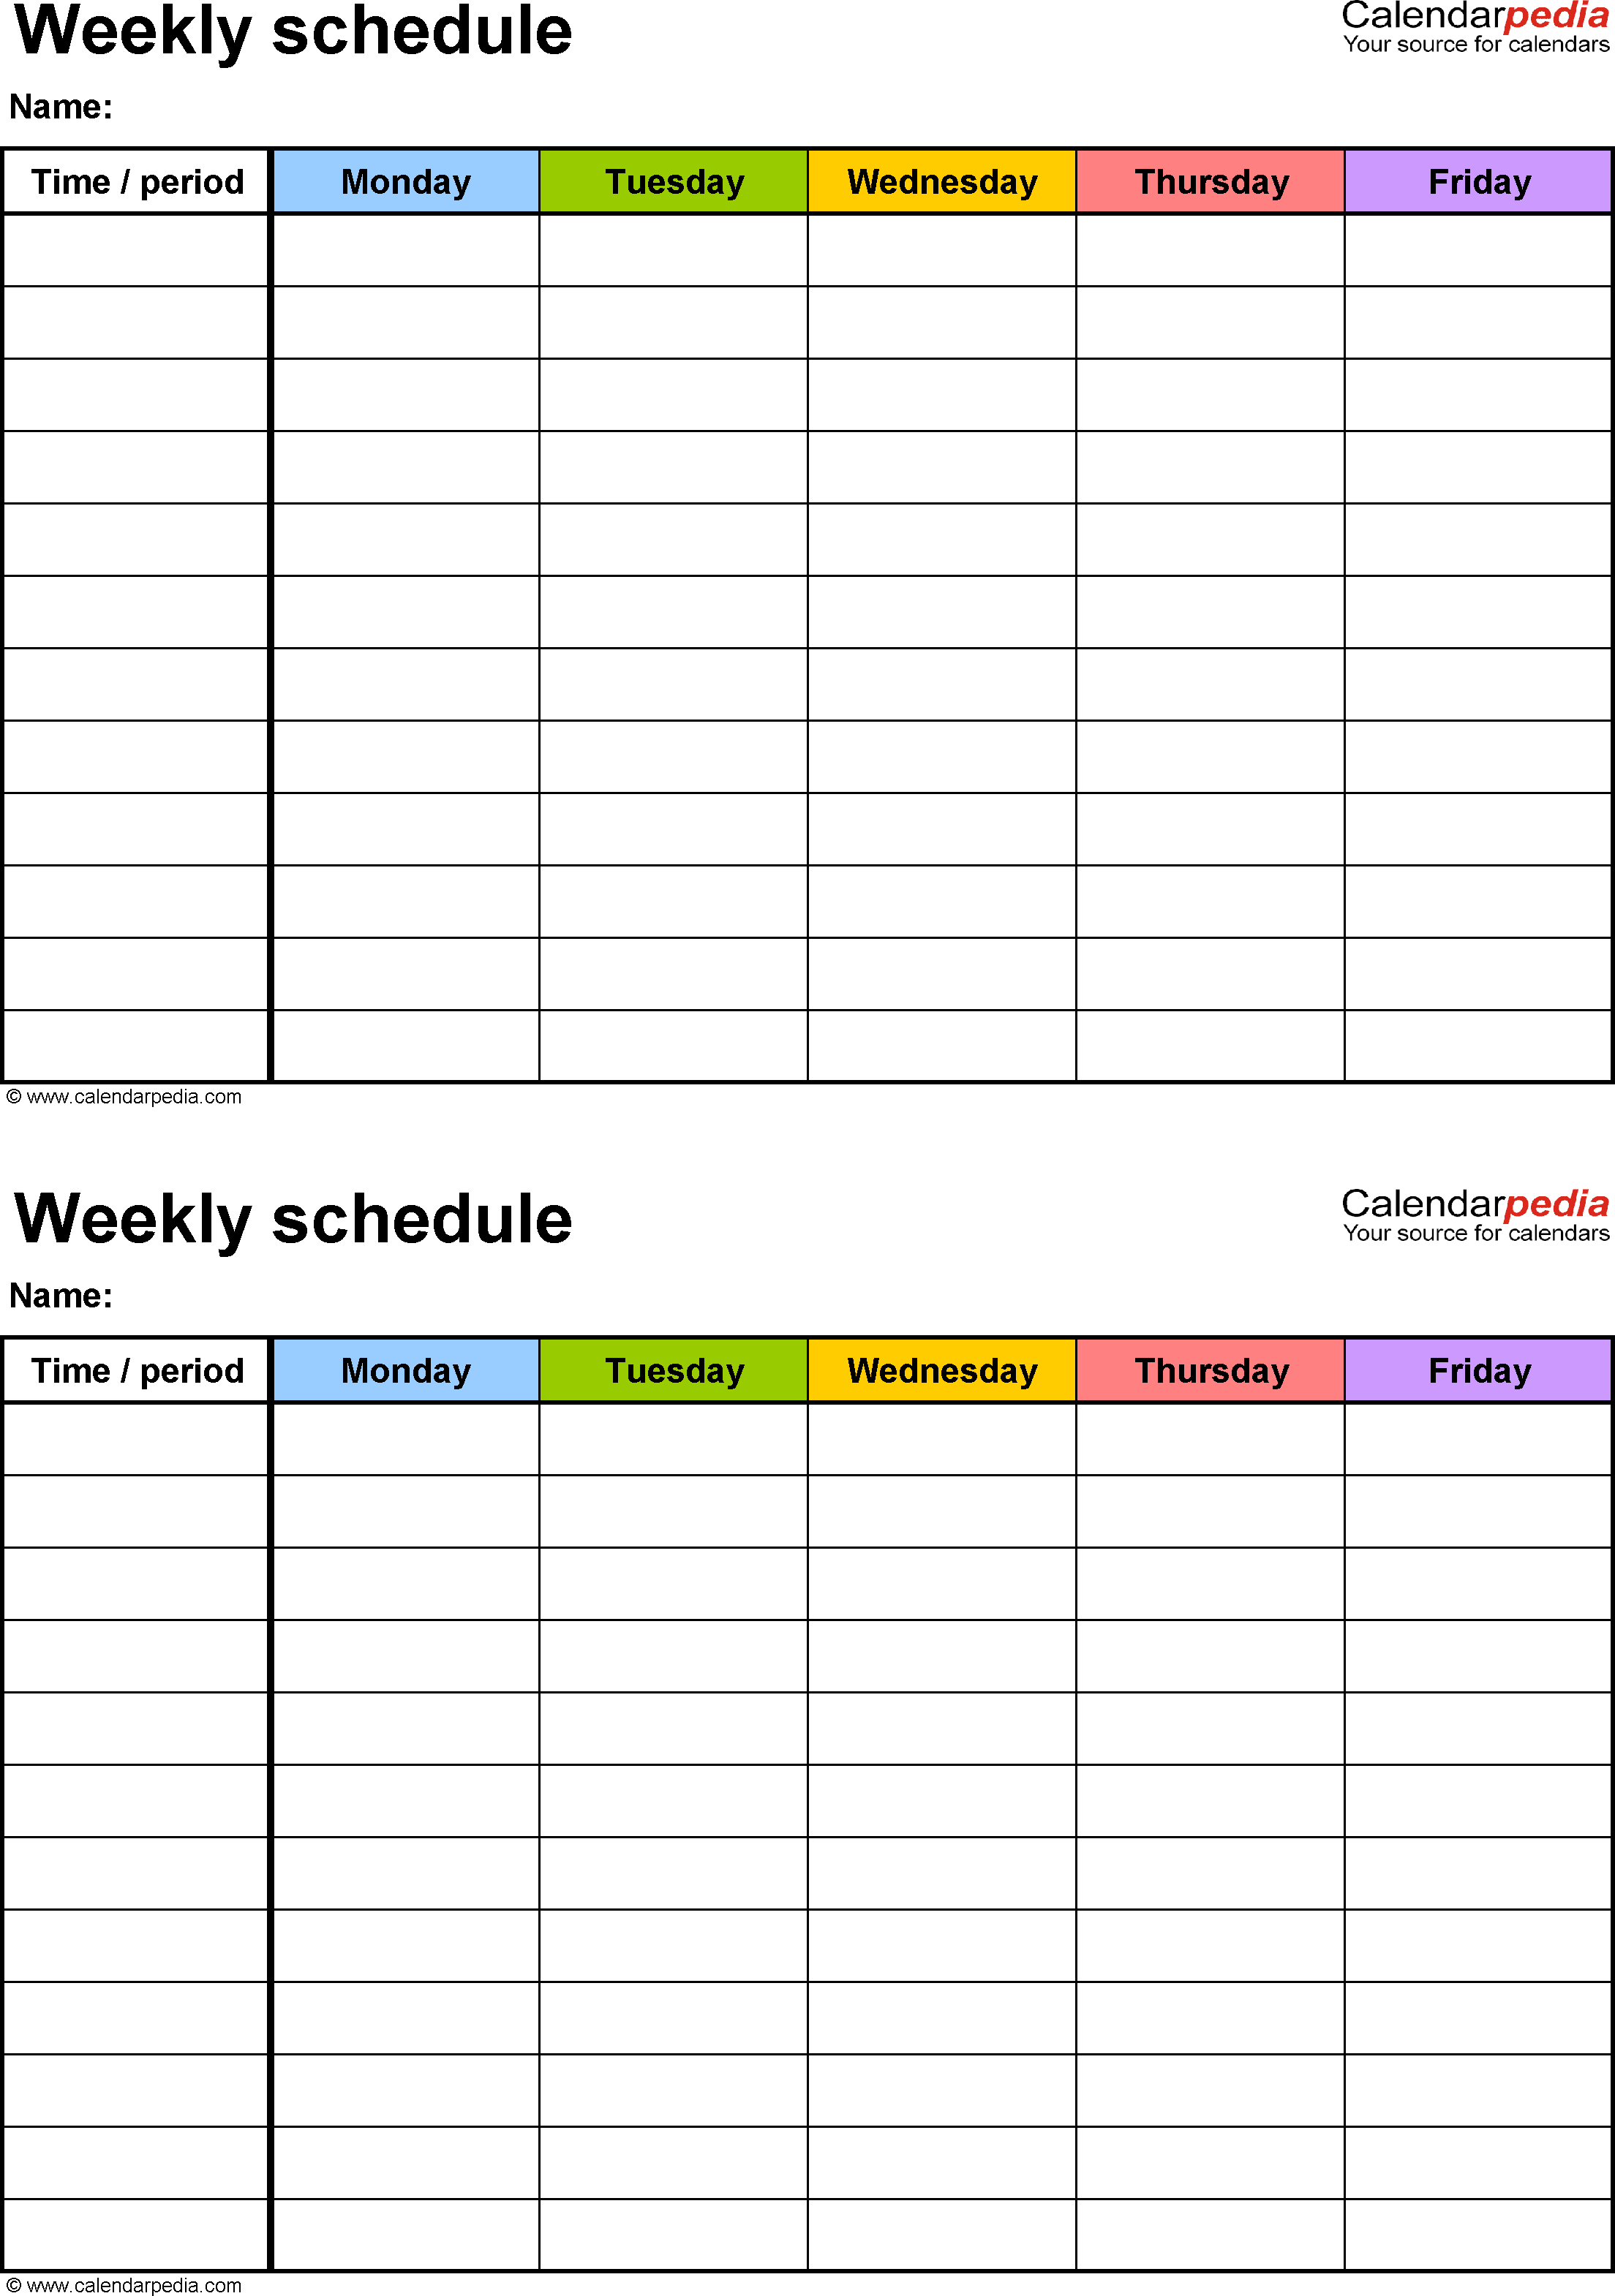 003 Weekly Class Schedule Template Ideas Excel Fantastic 12 throughout 12 Hour Shift Schedule Template Excel